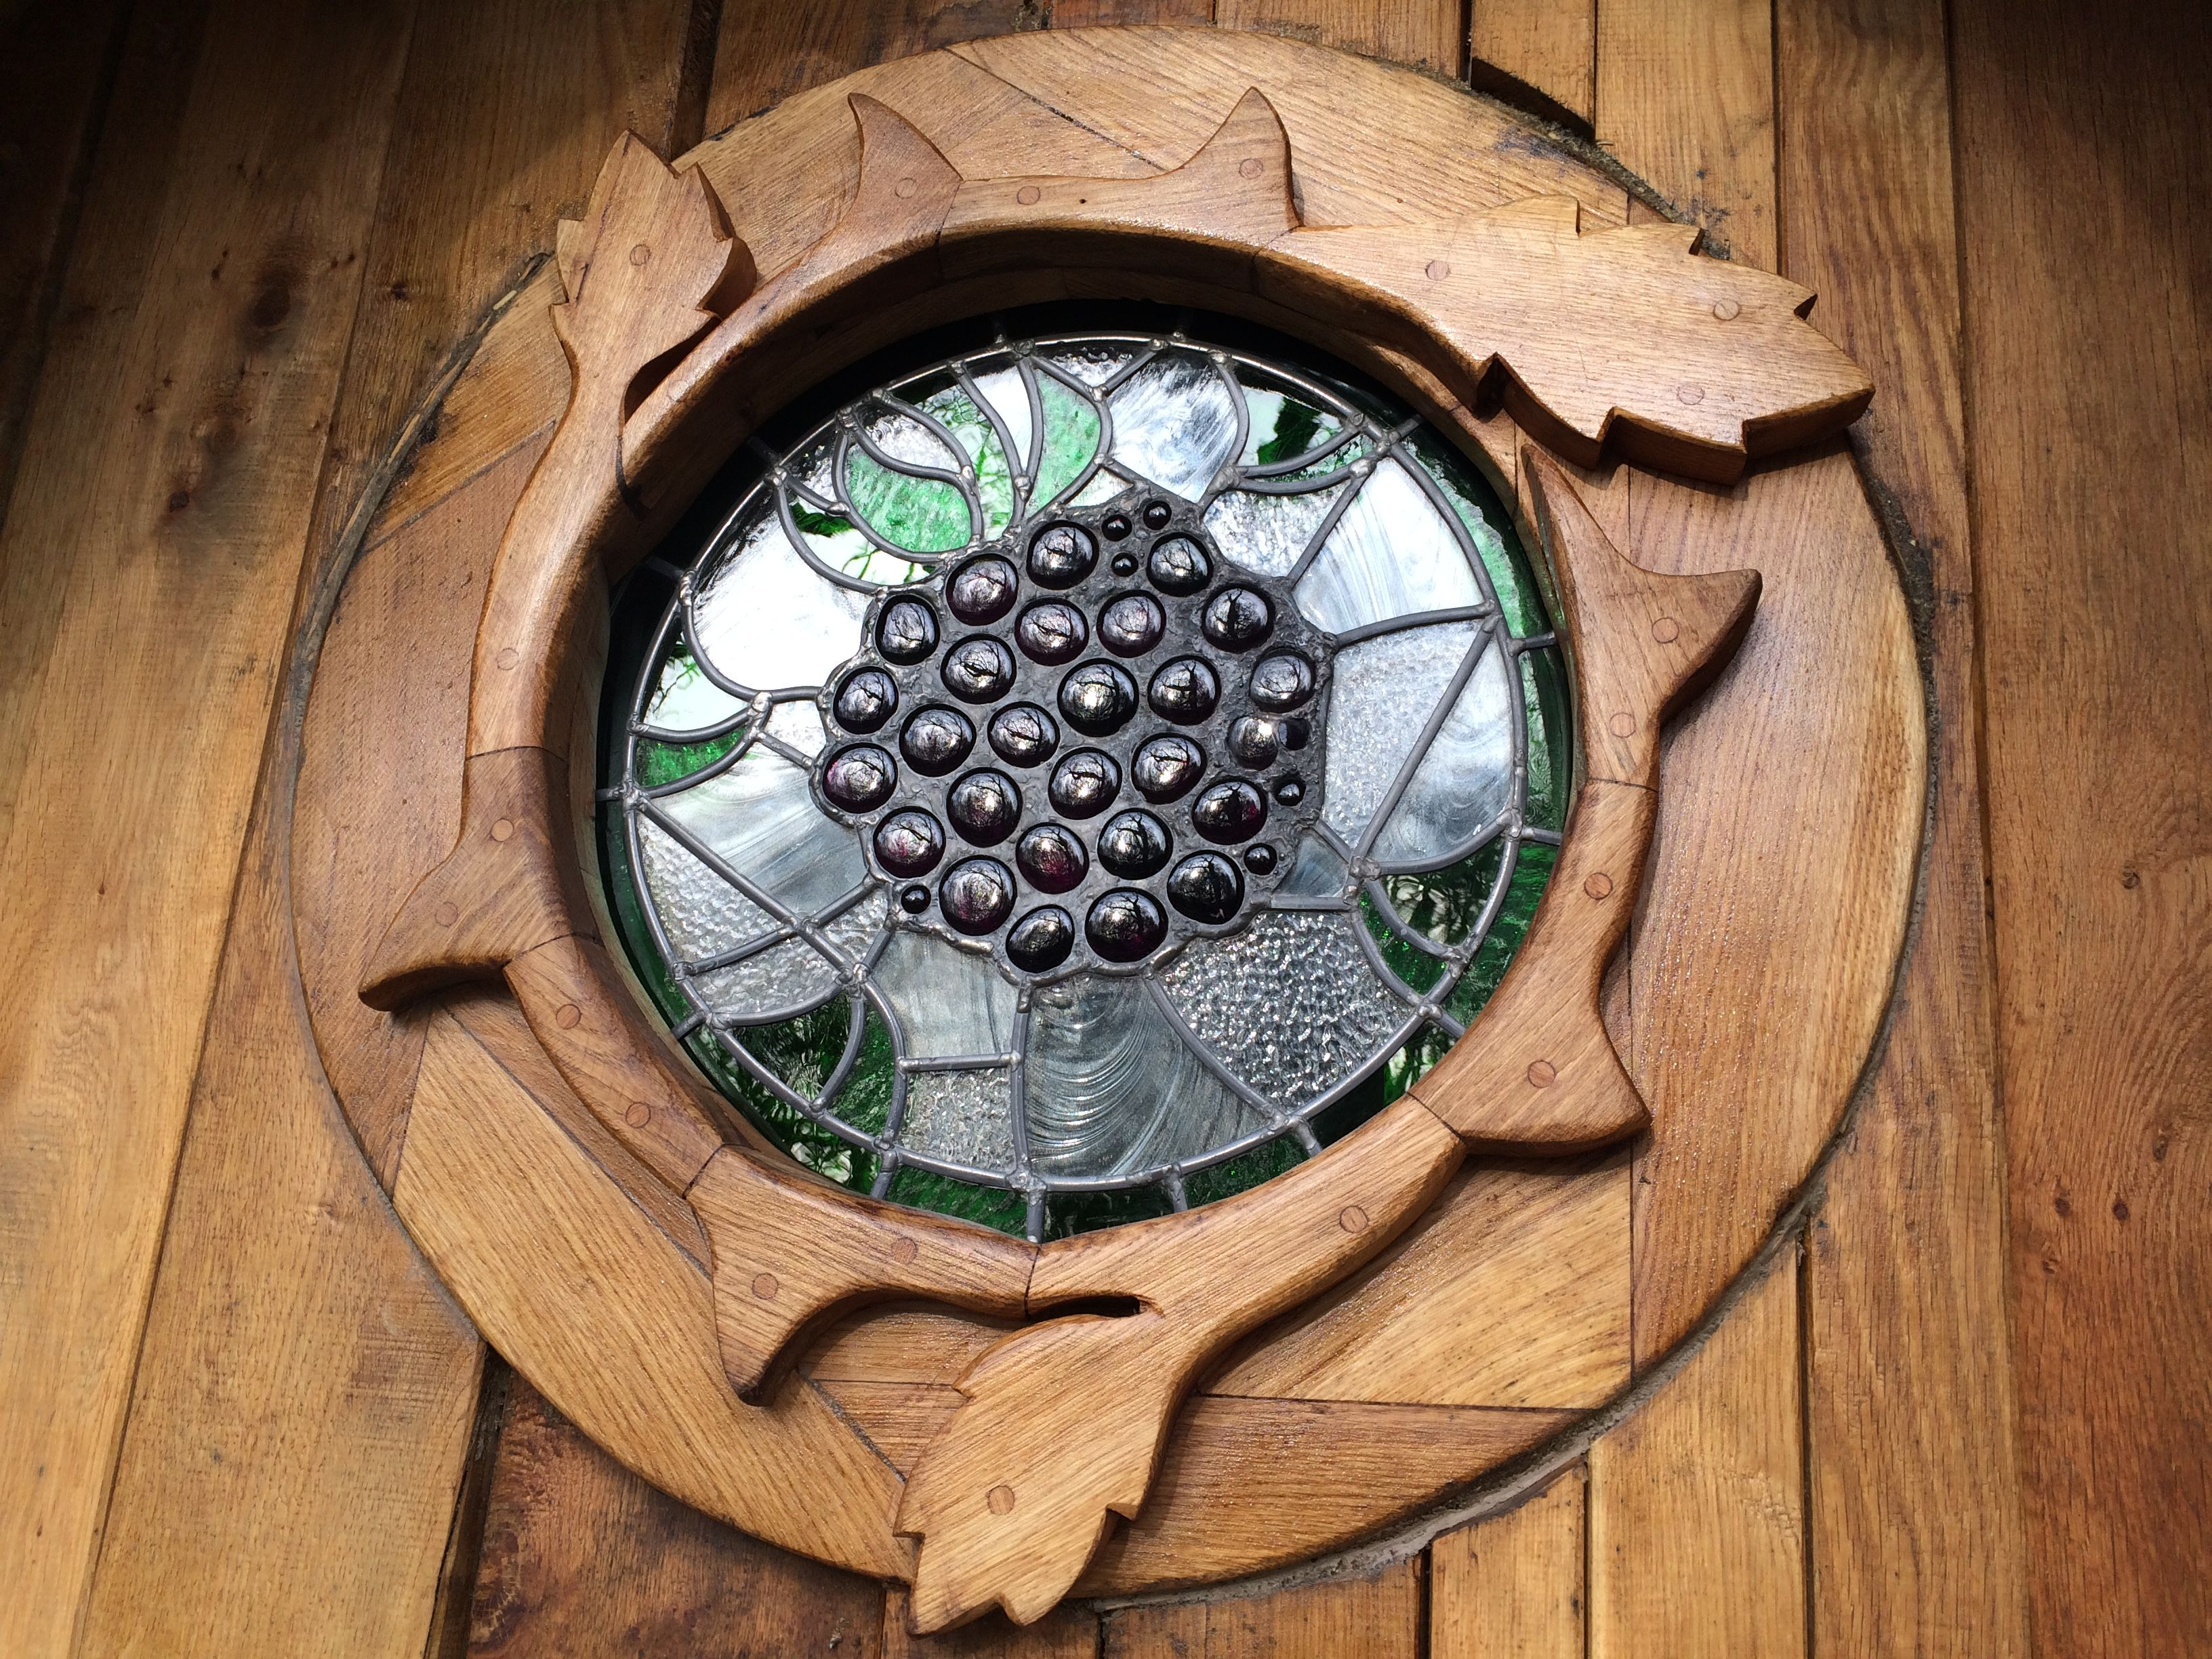 Carved wood and stained glass window